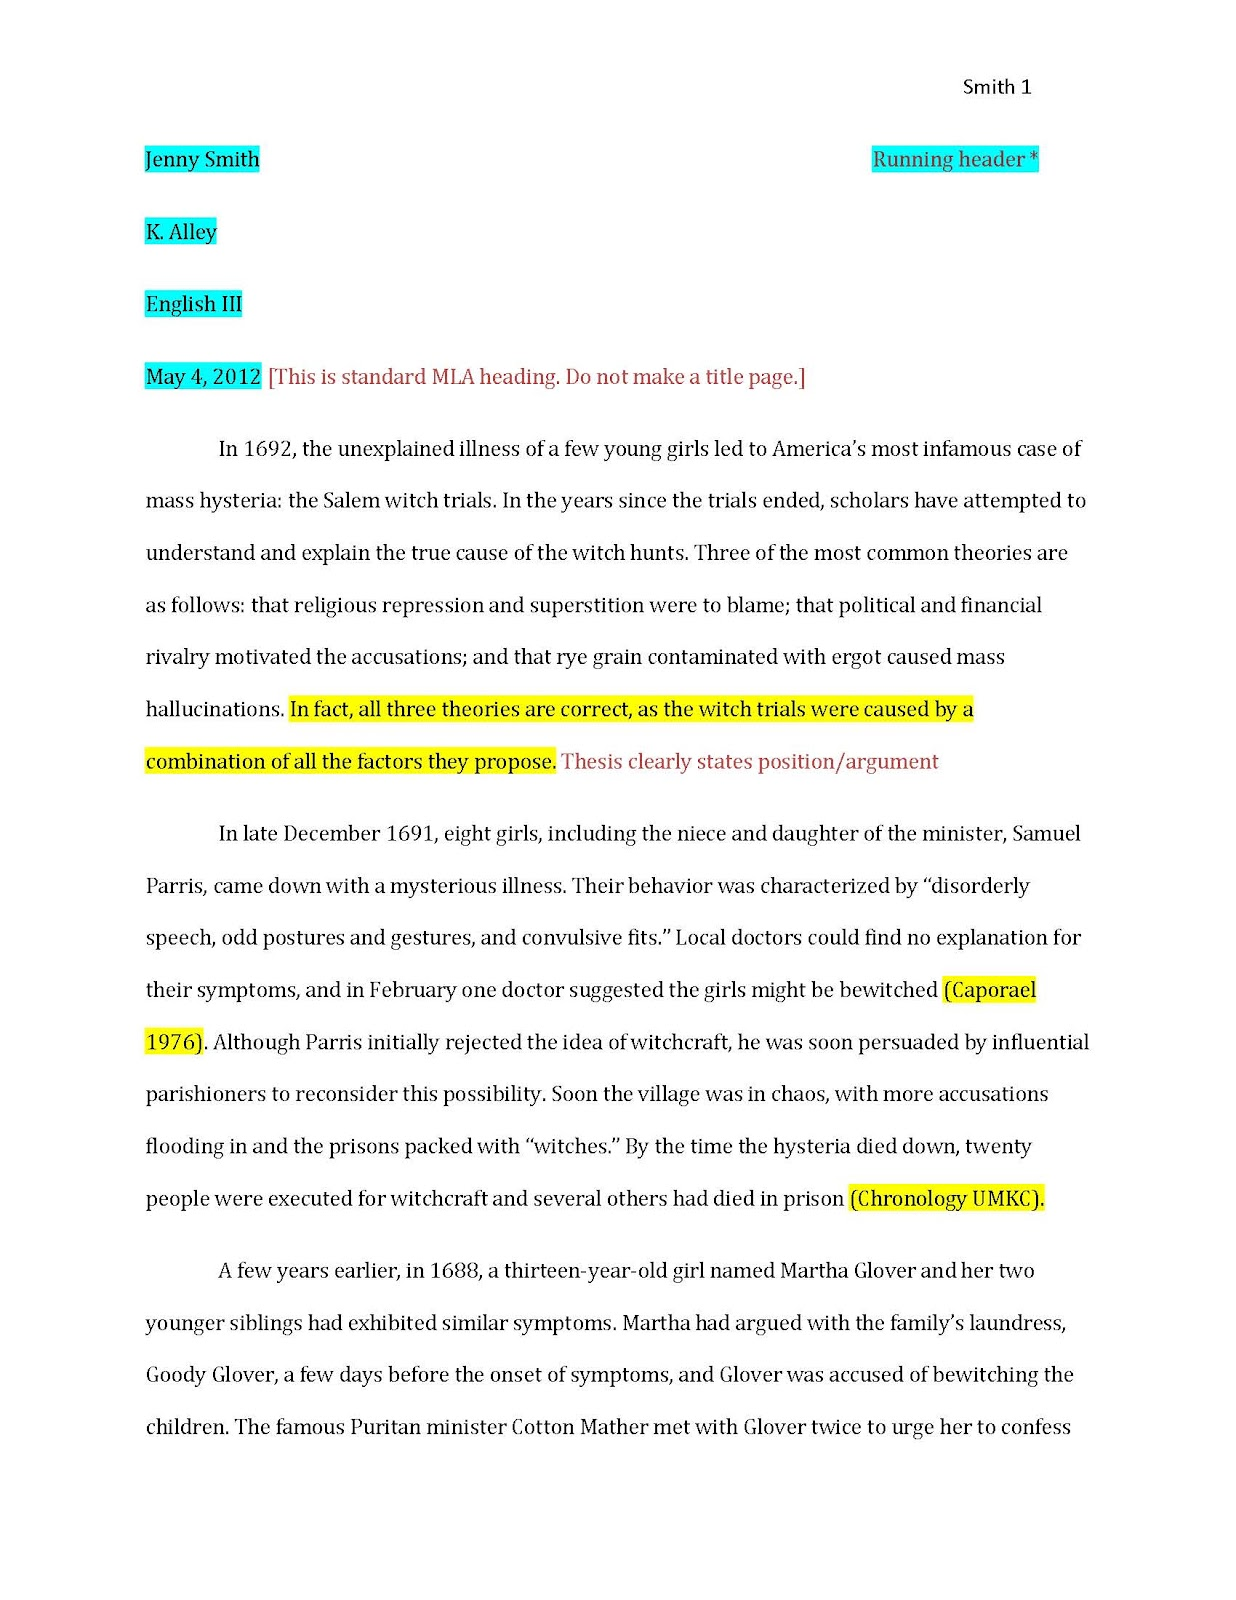 002 Citing Research Paper Sample Examplepaper Page 1 Stupendous A Bibliography Full